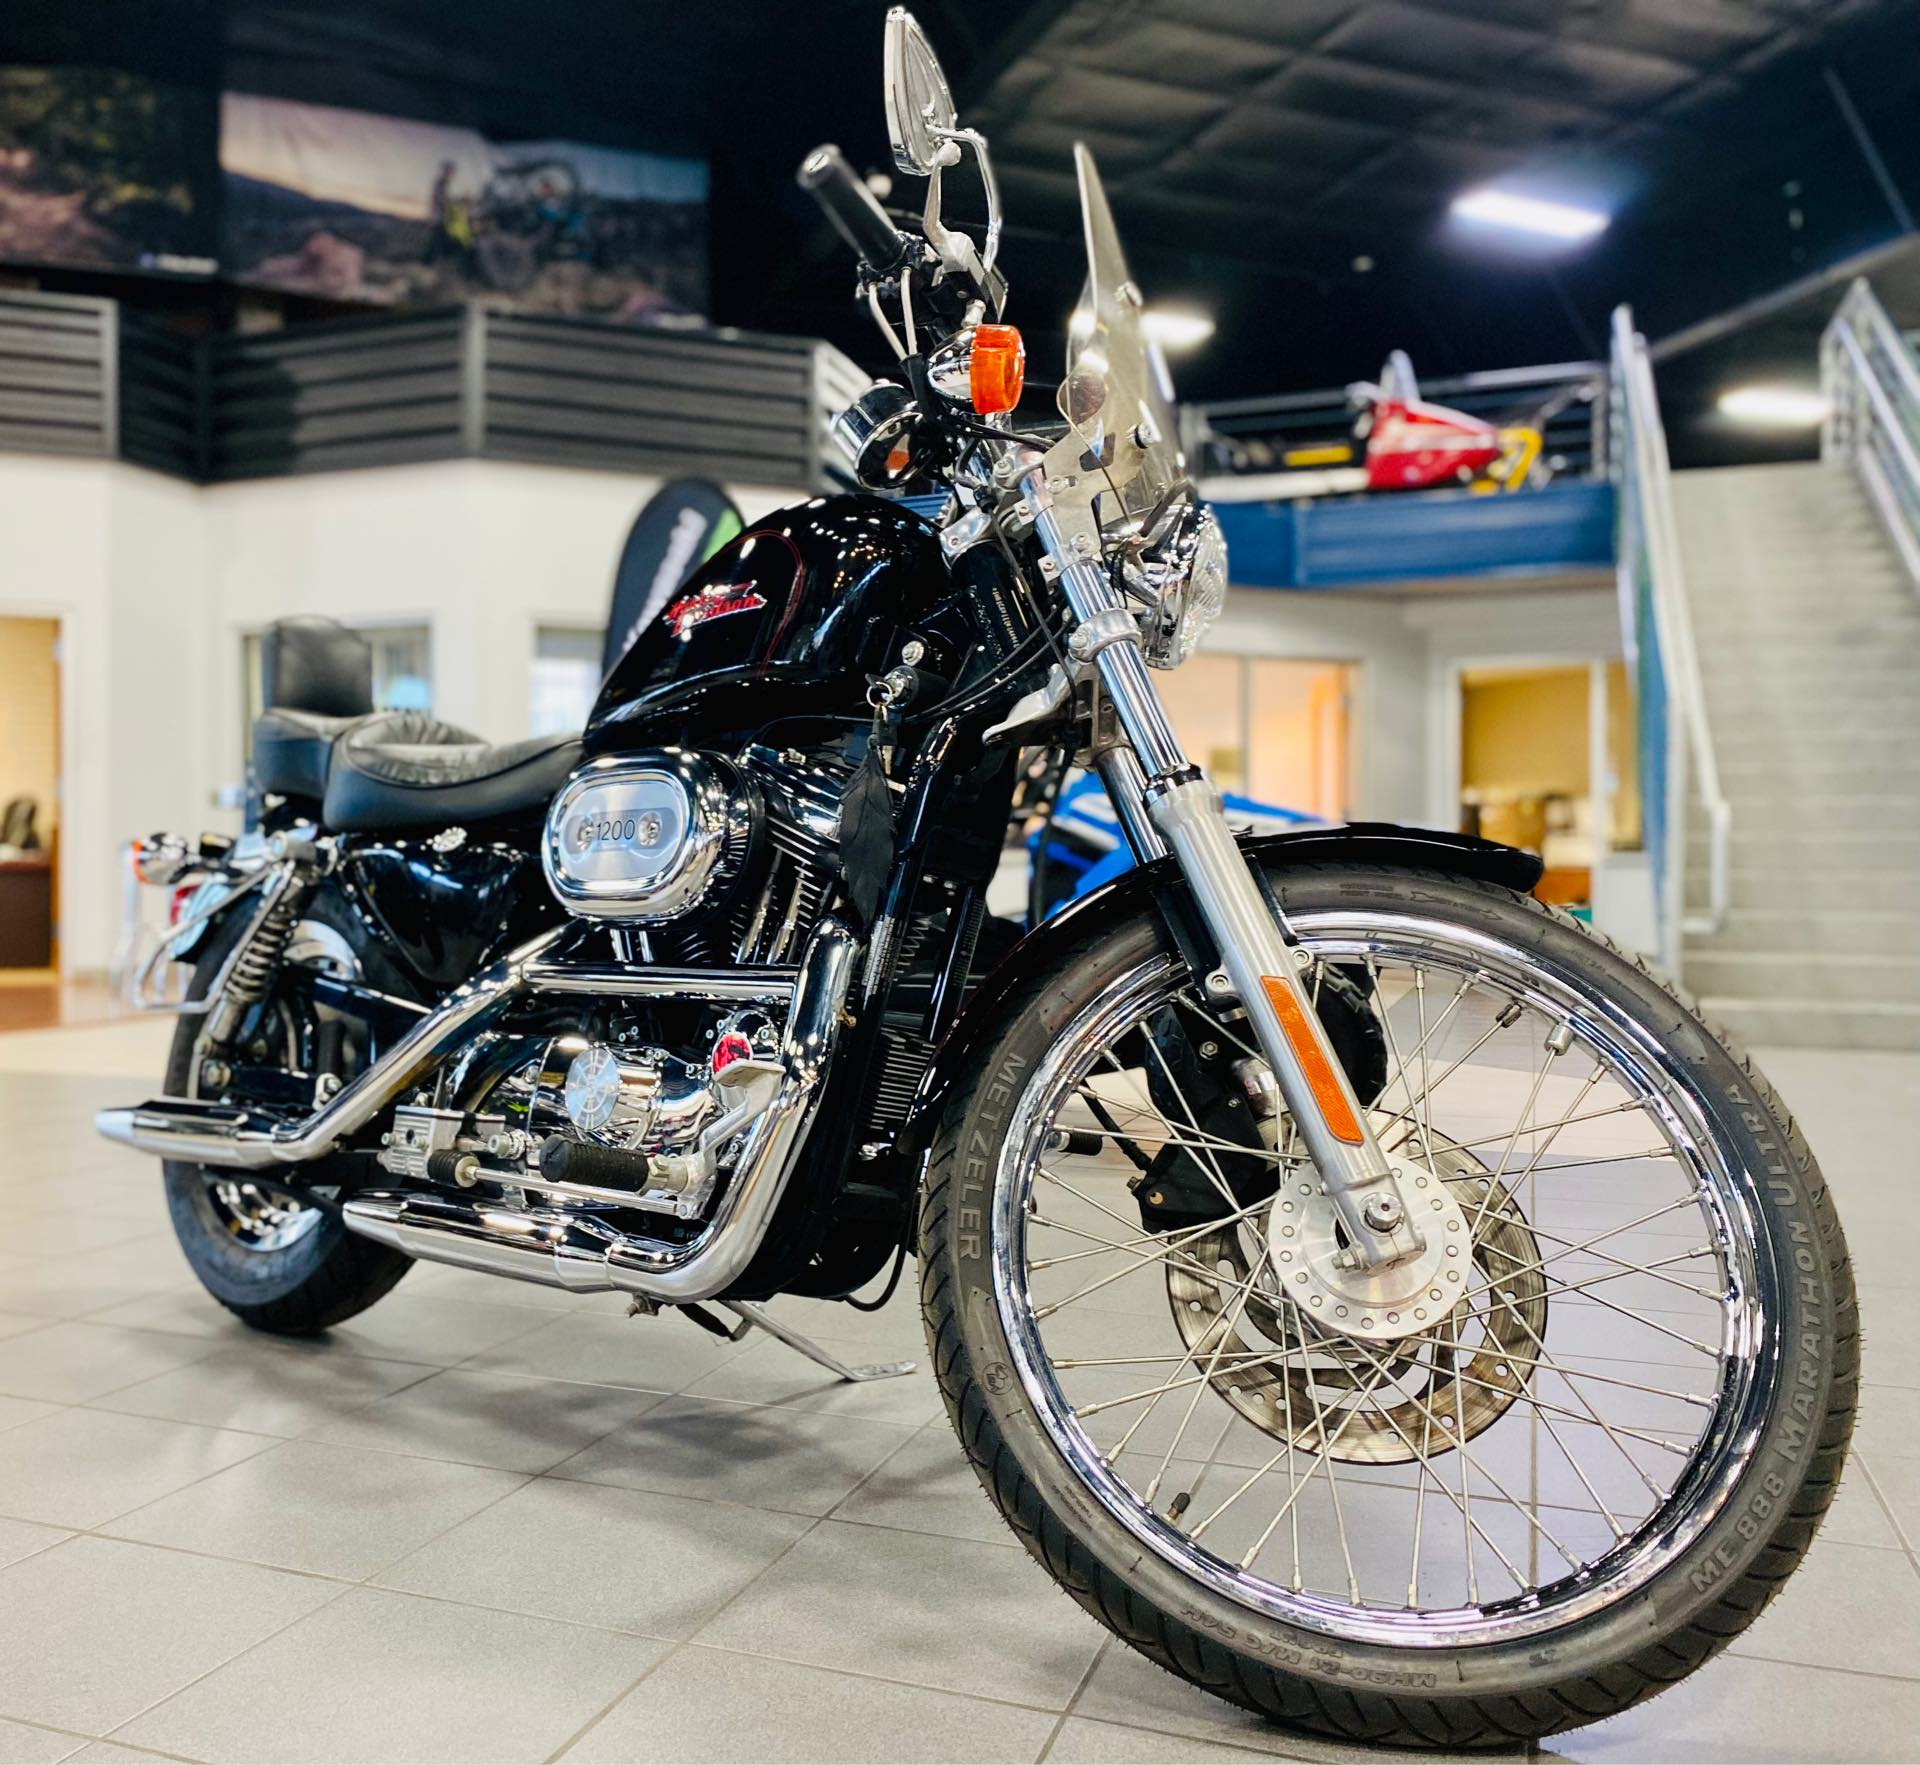 2001 HARLEY DAVIDSON SPORTSTER at Rod's Ride On Powersports